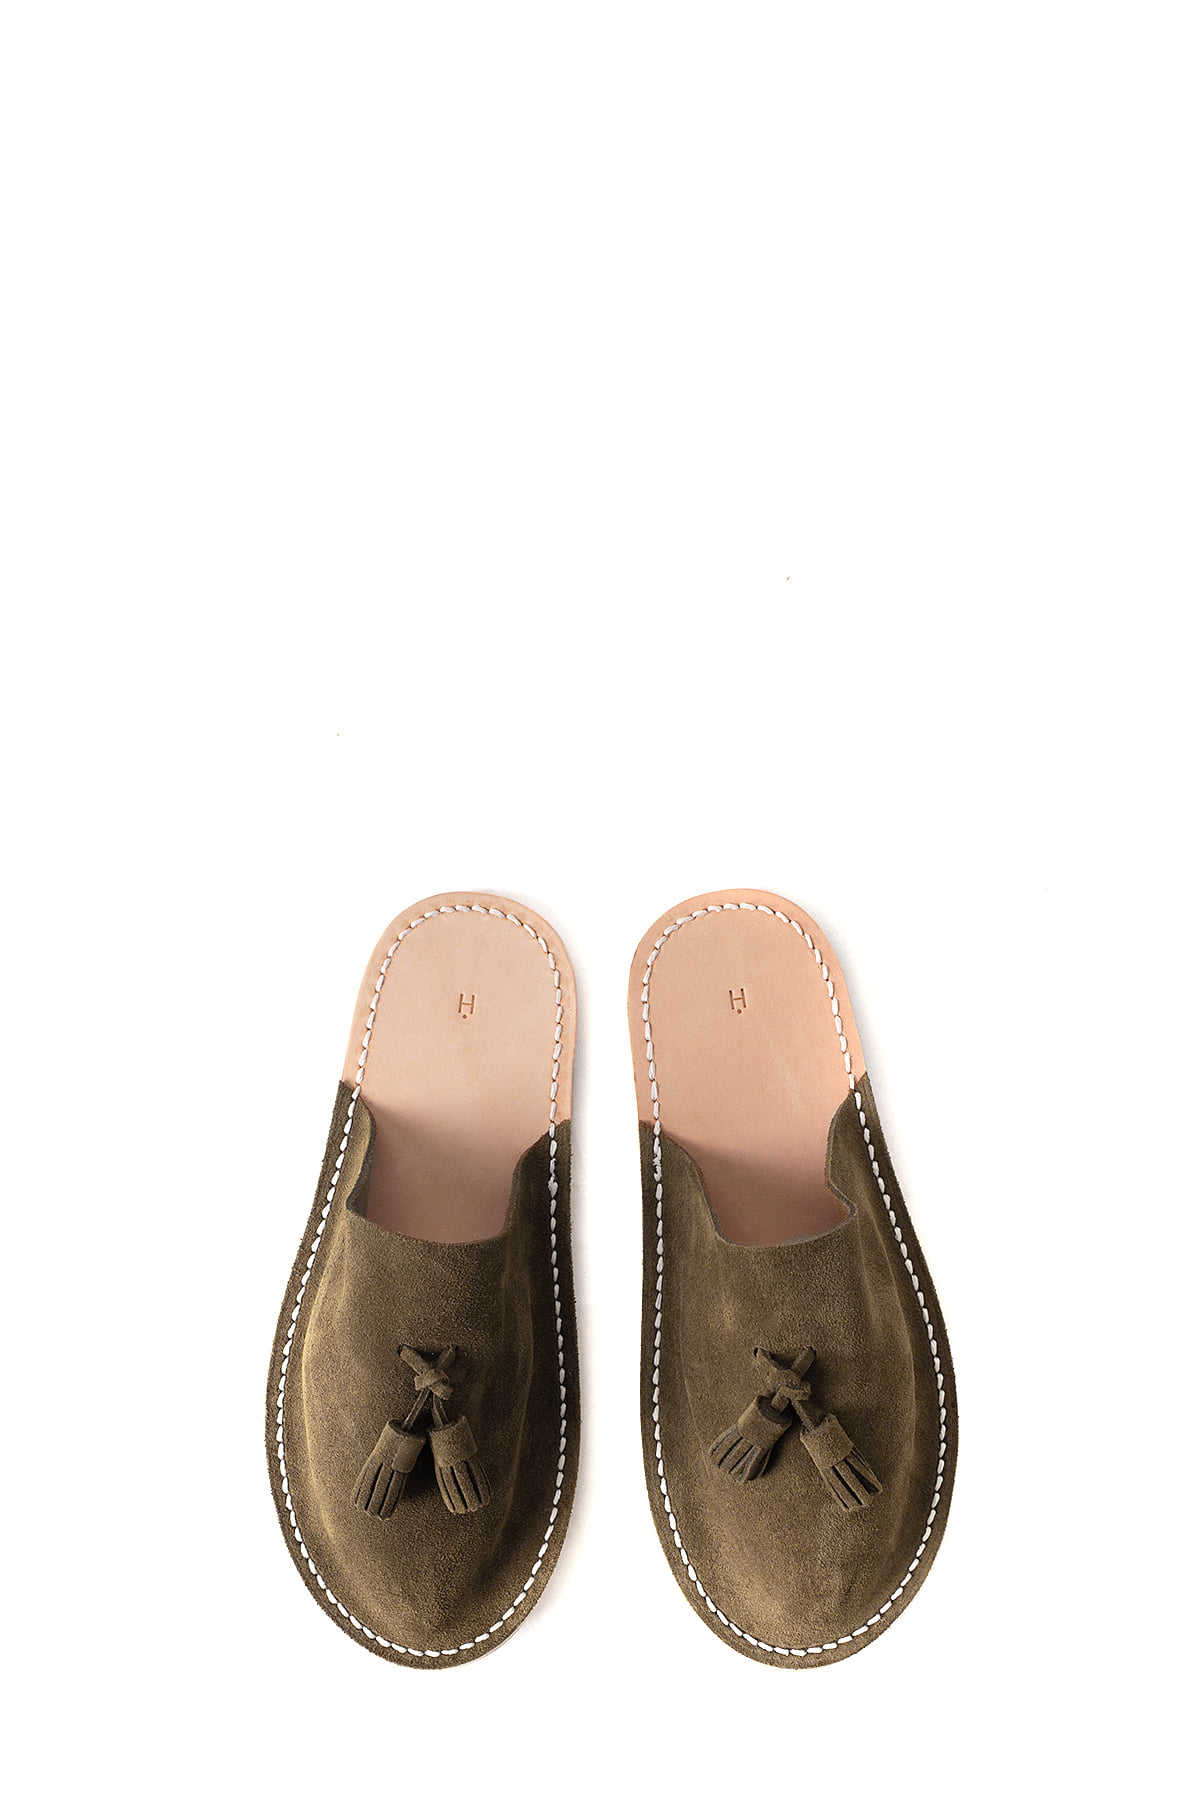 Hender Scheme : Leather Slipper (Camel)